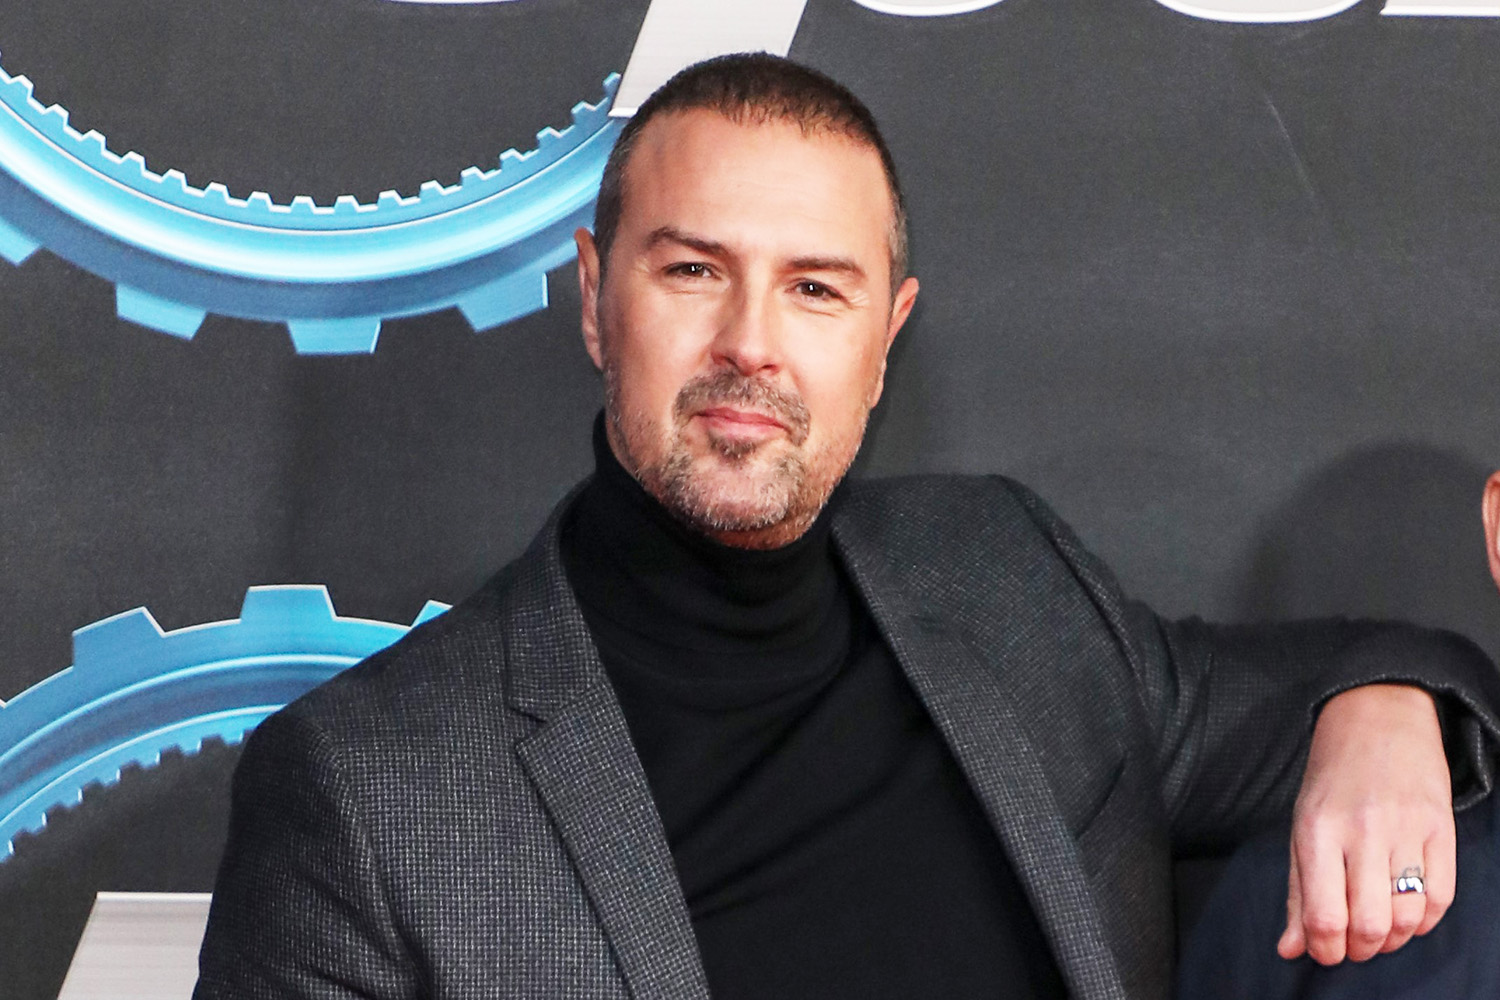 Paddy McGuinness celebrates weight loss after admitting he'd 'piled on' lockdown pounds